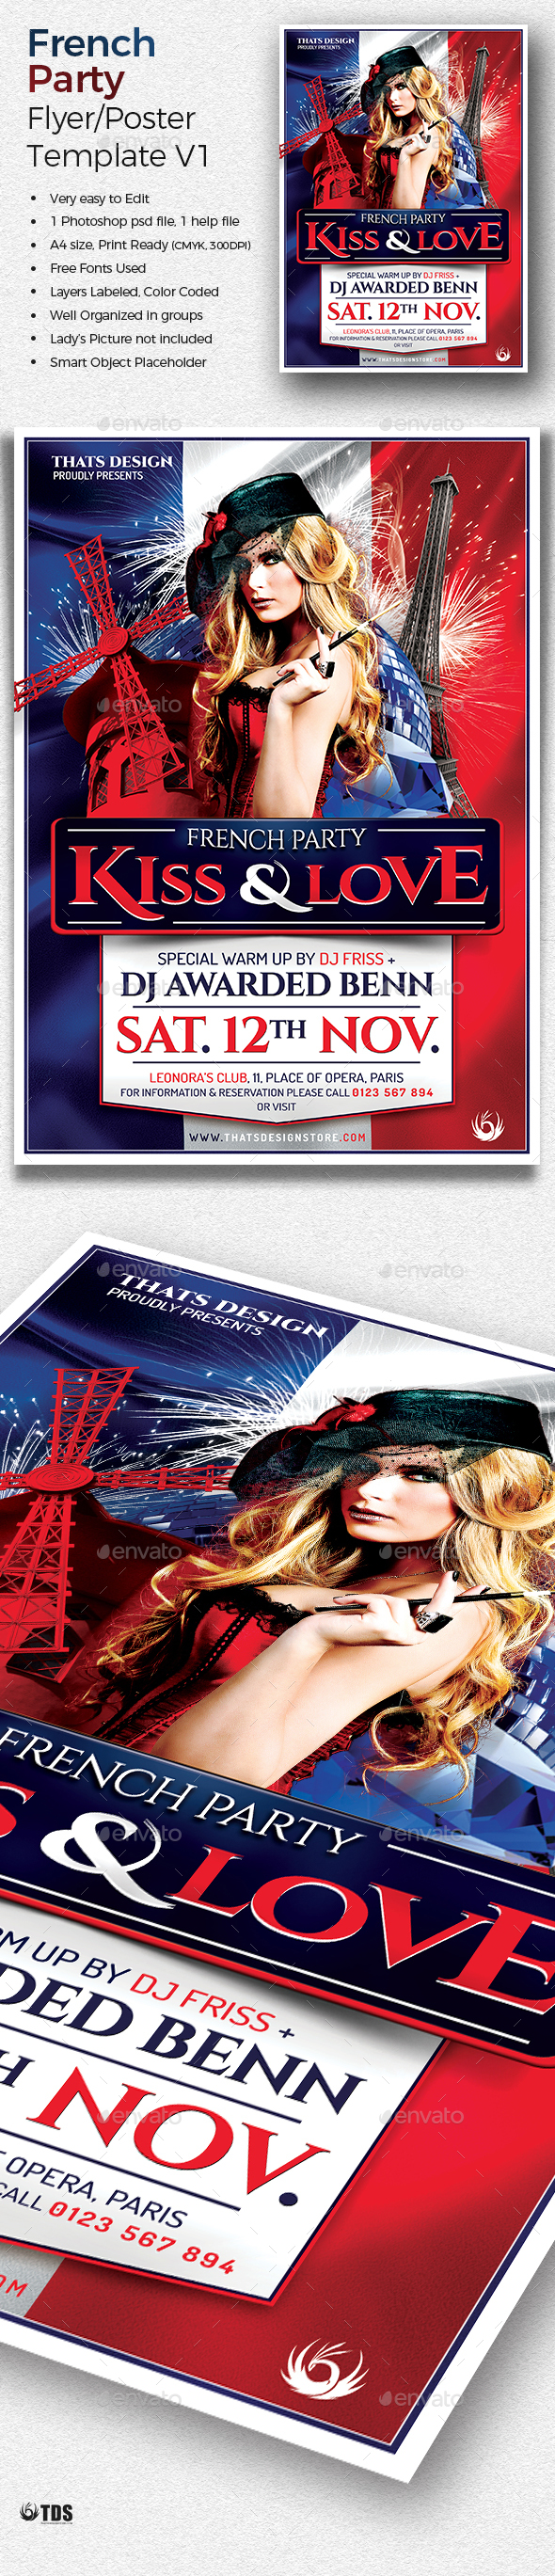 French Party Flyer Template V1 - Clubs & Parties Events